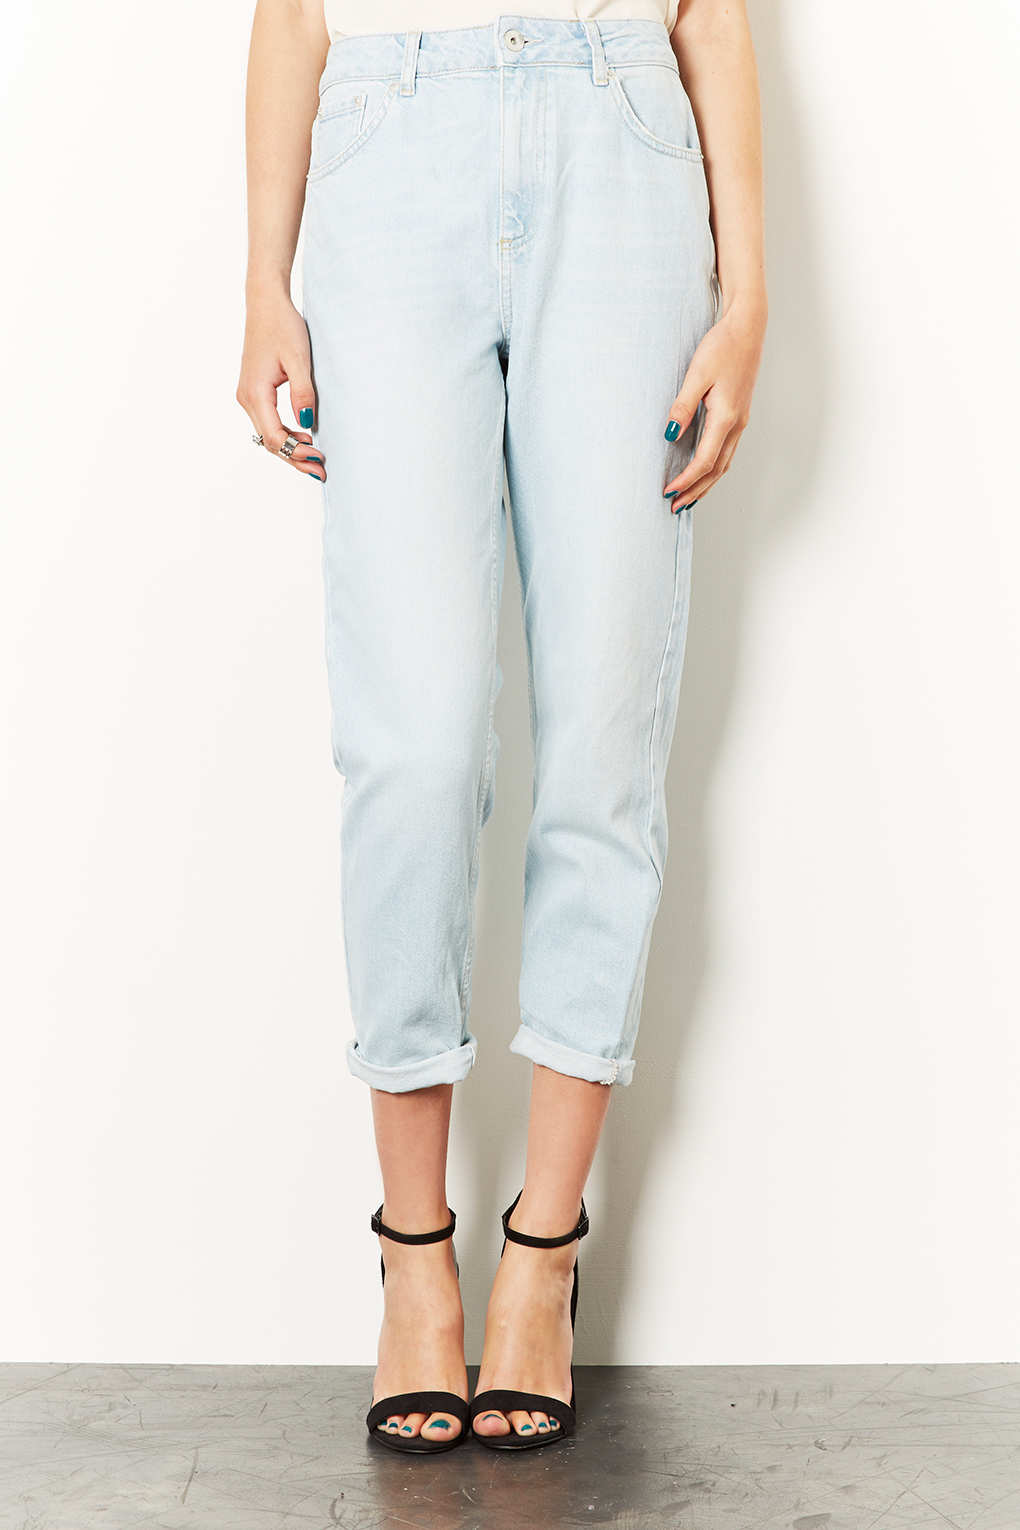 Bleach Jeans Lyst Topshop Acid Blue Moto In Mom RjcqA543LS